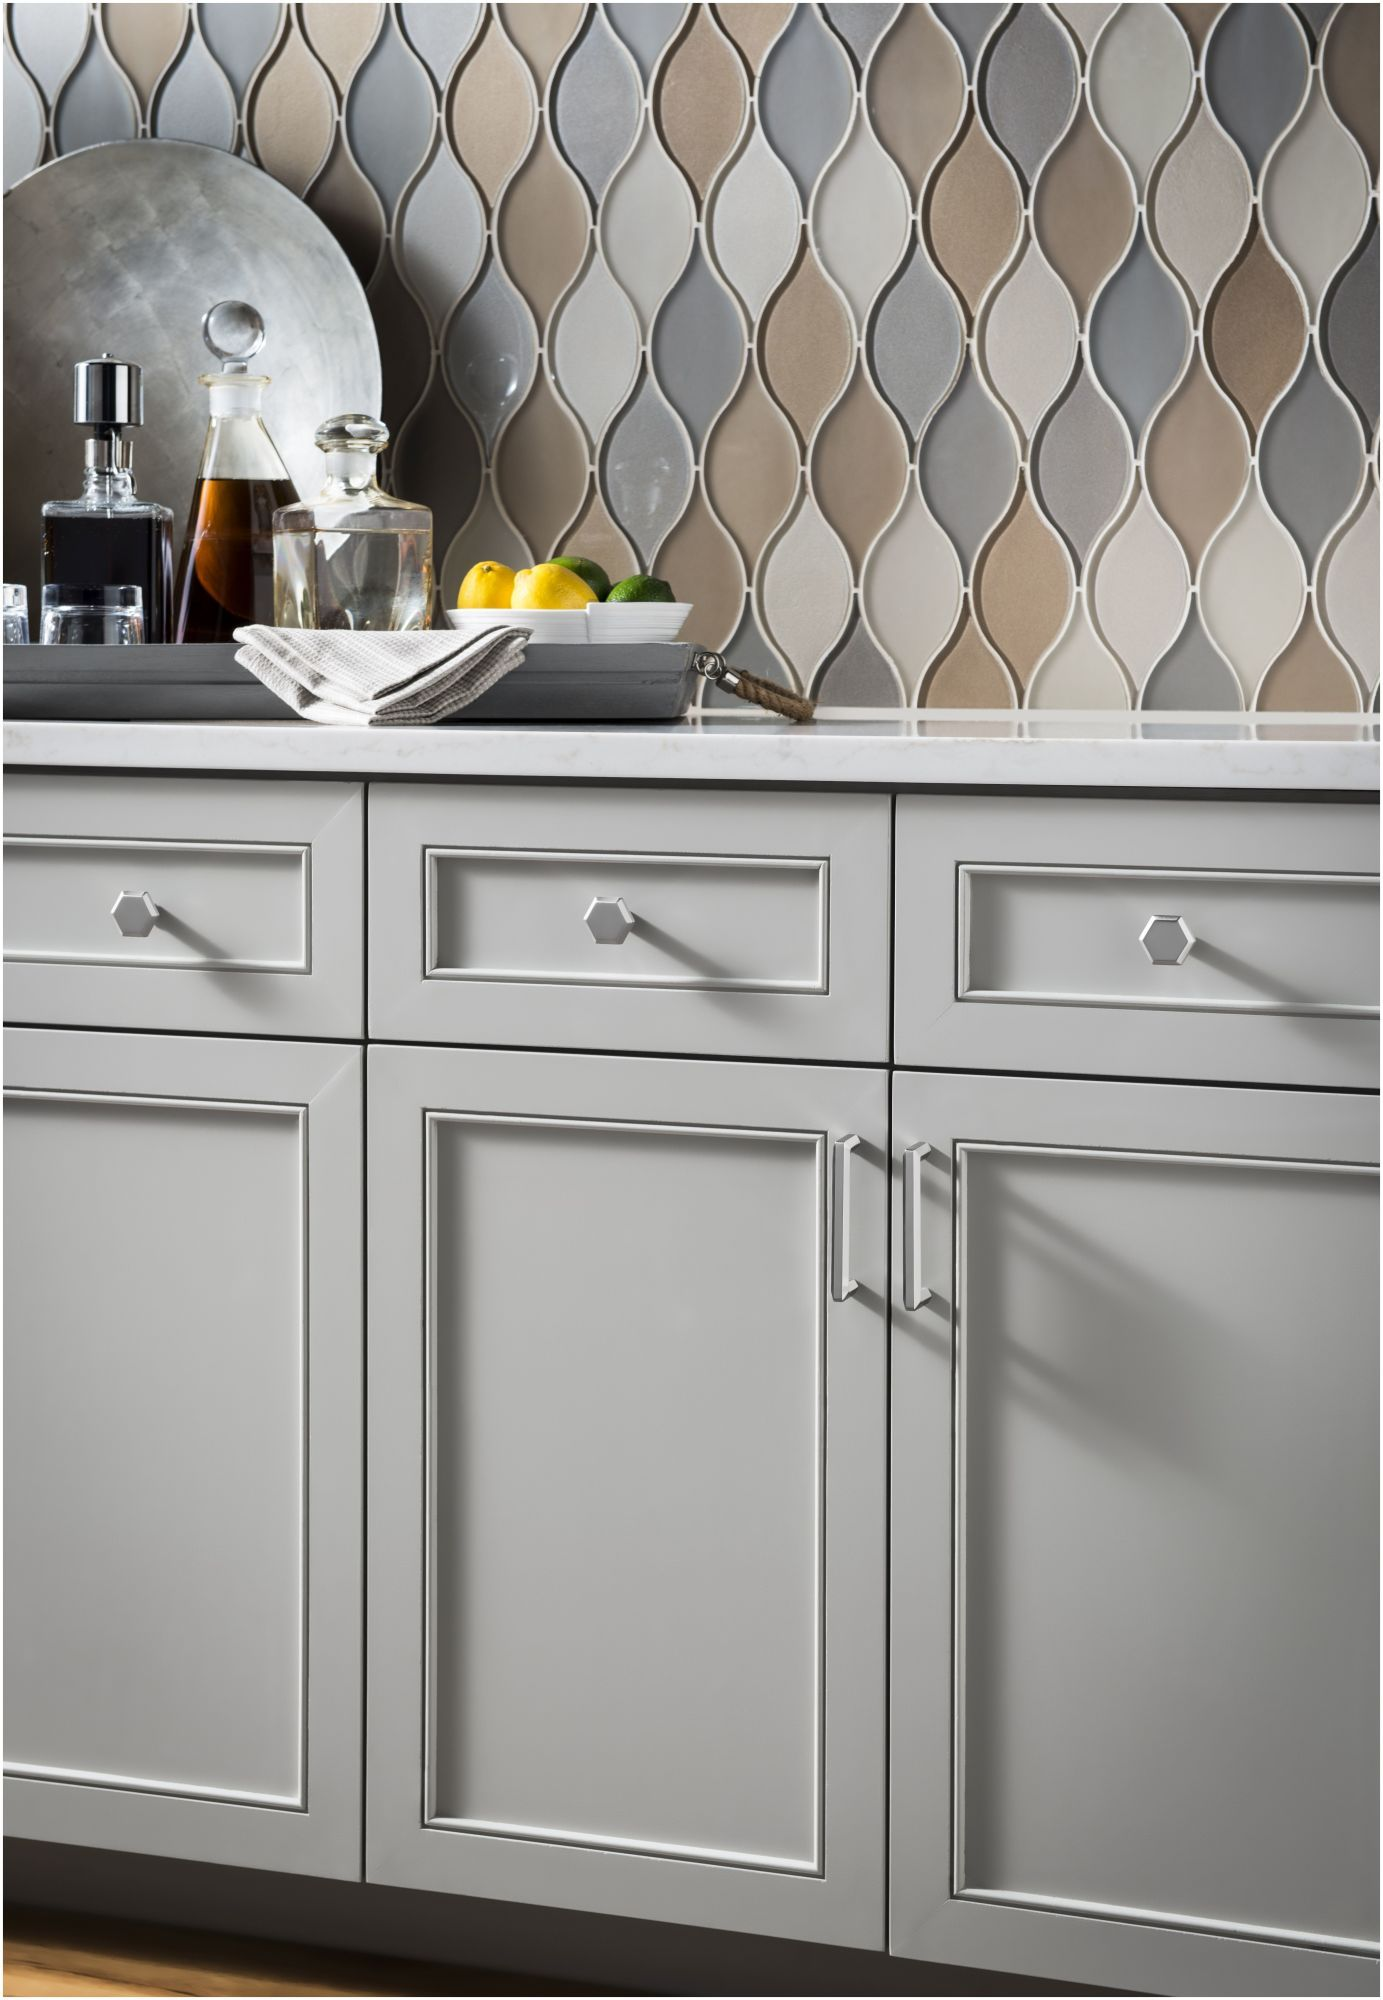 Pin On Glass Mosaic Tile Kitchen Kitchen cabinet pull and handles